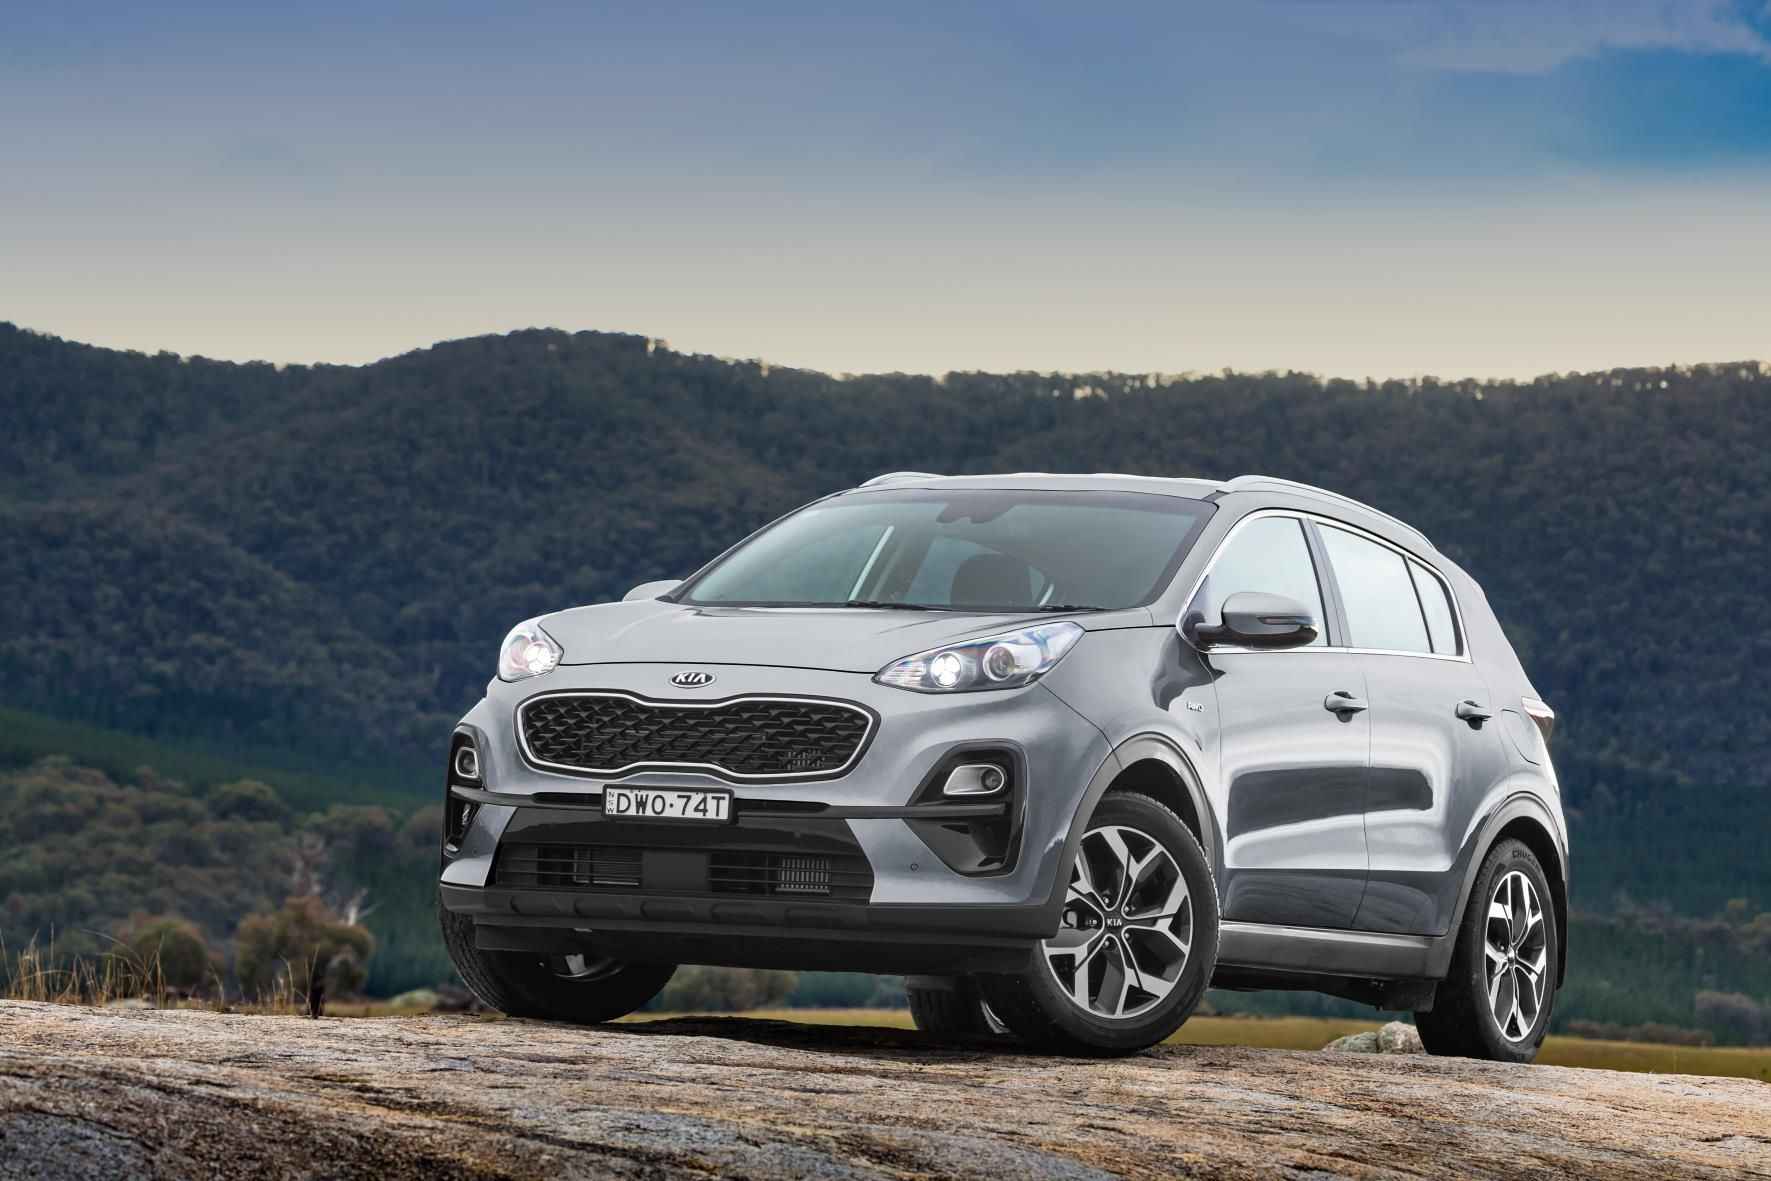 Drive Outside Of The Box In A Modern Compact Crossover That Defies Conventions With An Elegant Extroverted Exterior Distinguished By Kia Sportage Sportage Kia